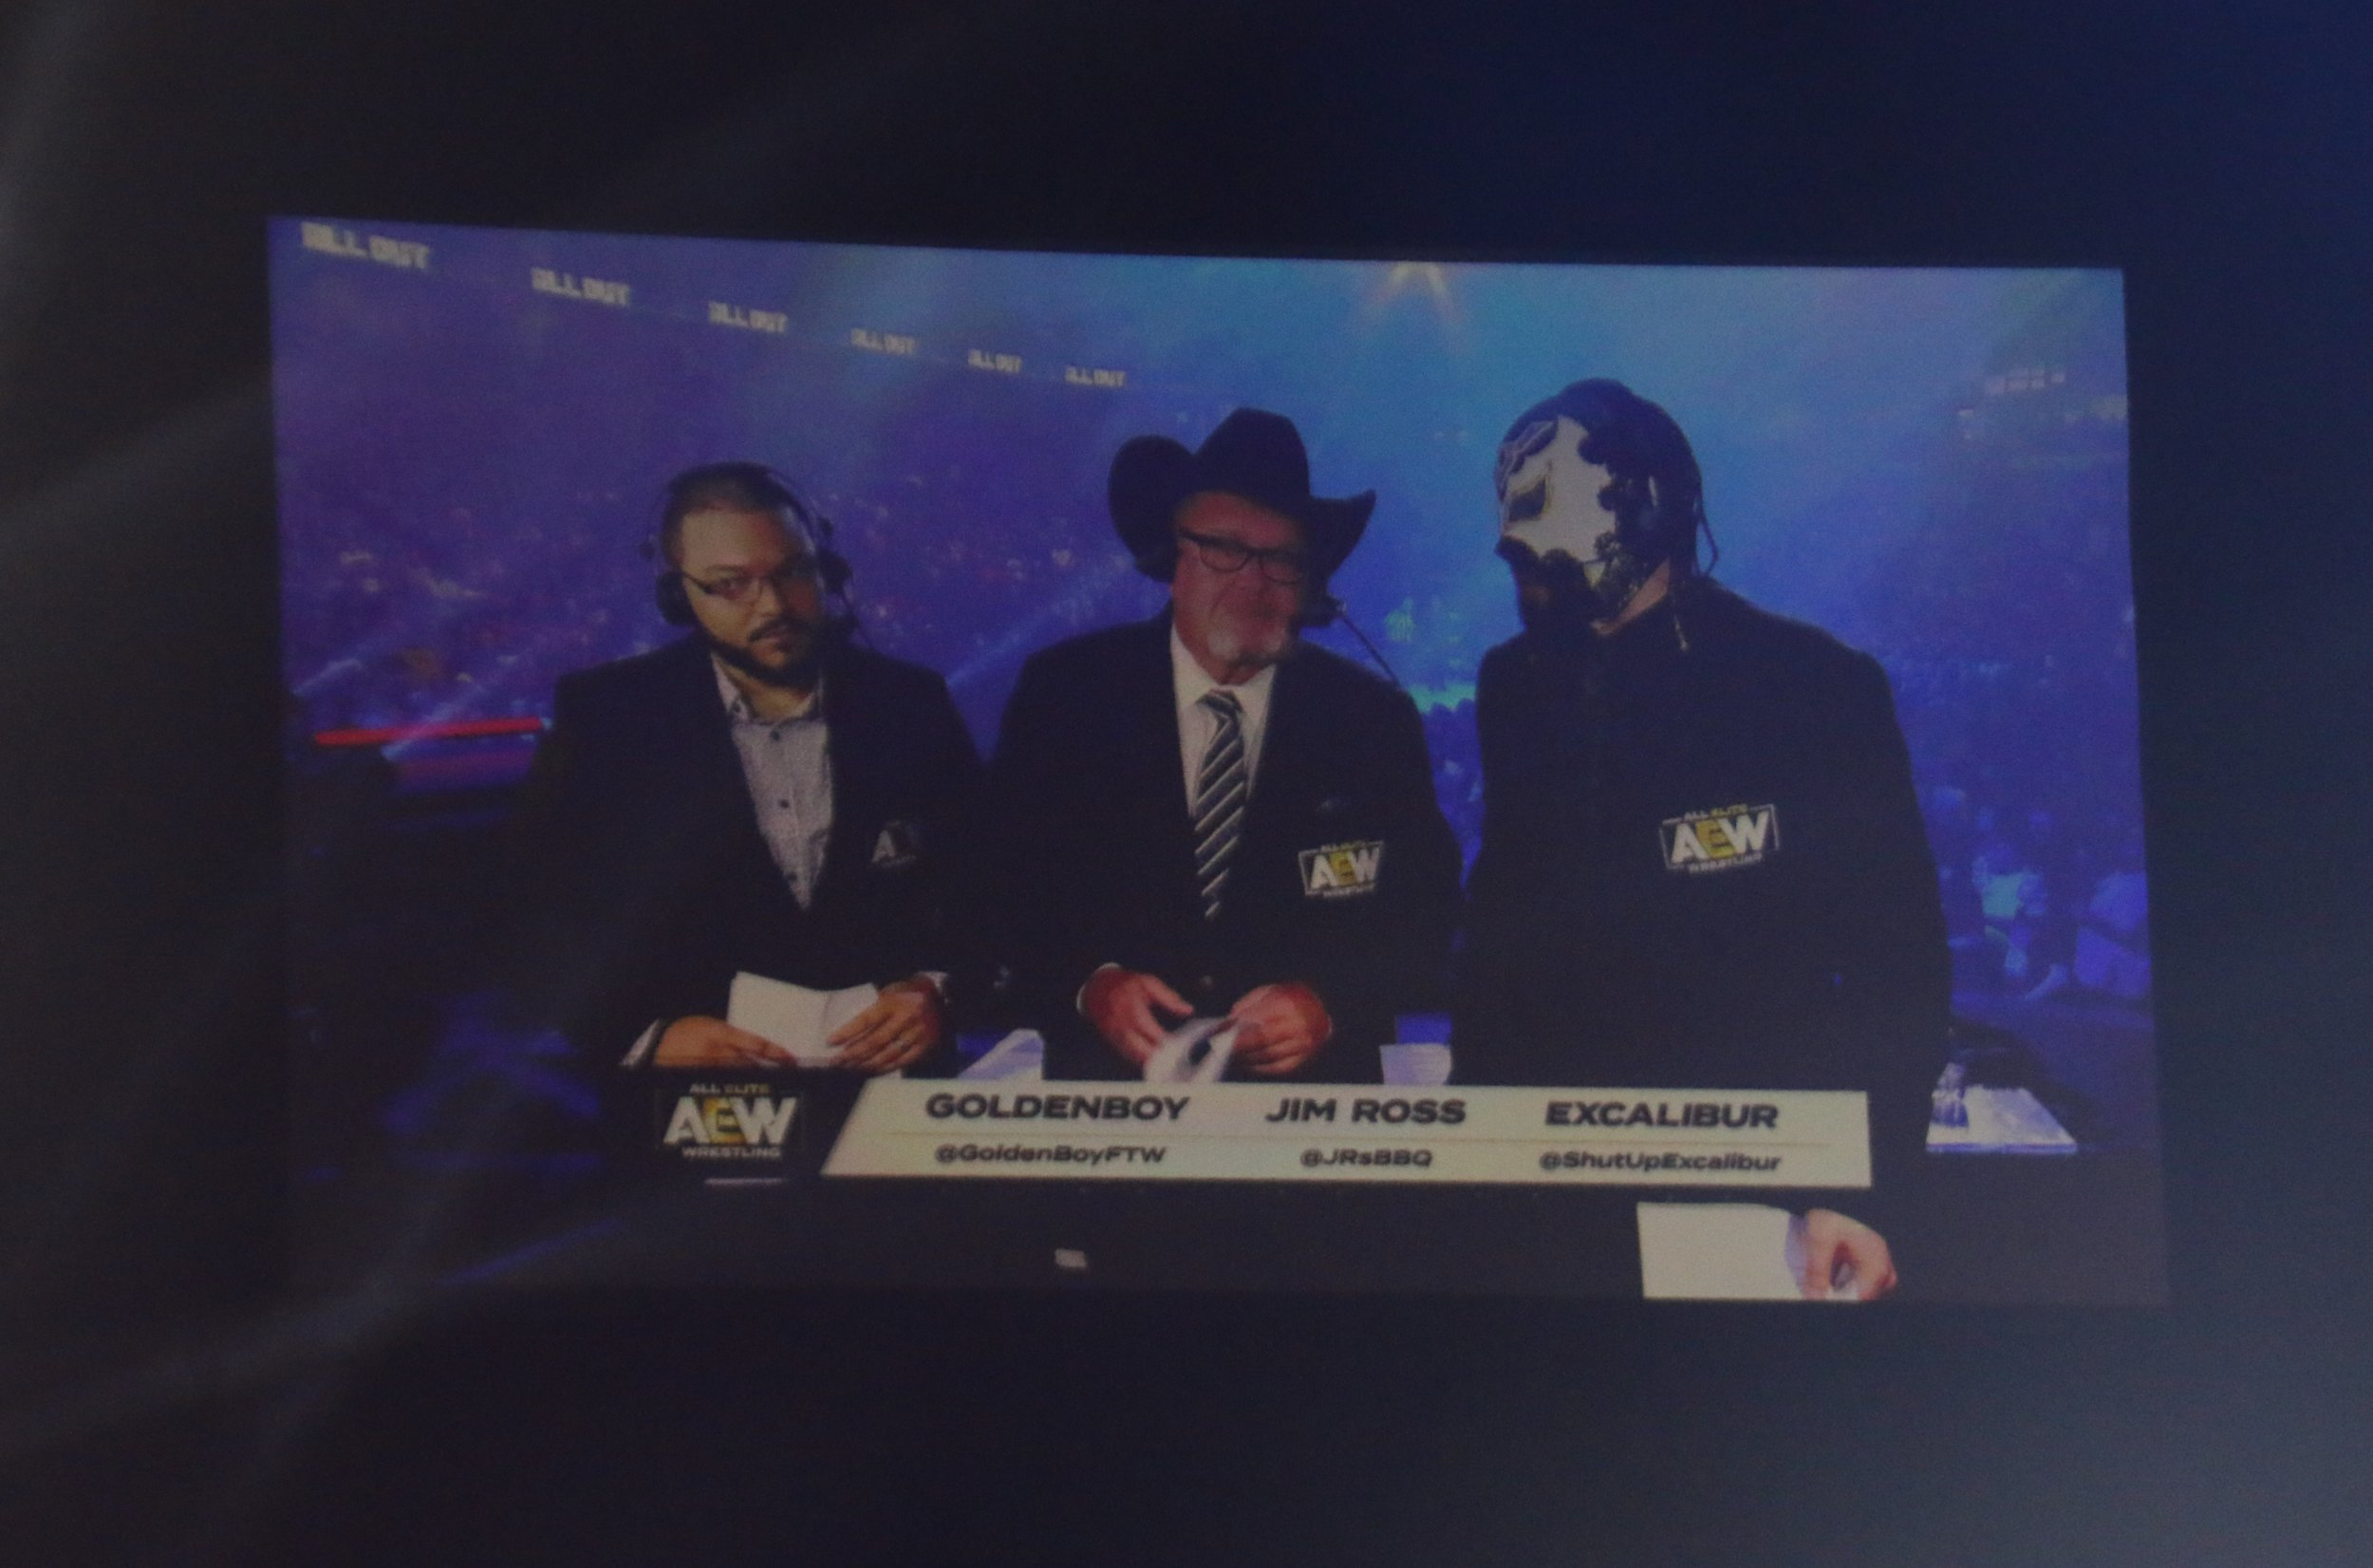 AEW announce team of Golden Boy, Jim Ross and Excalibur.